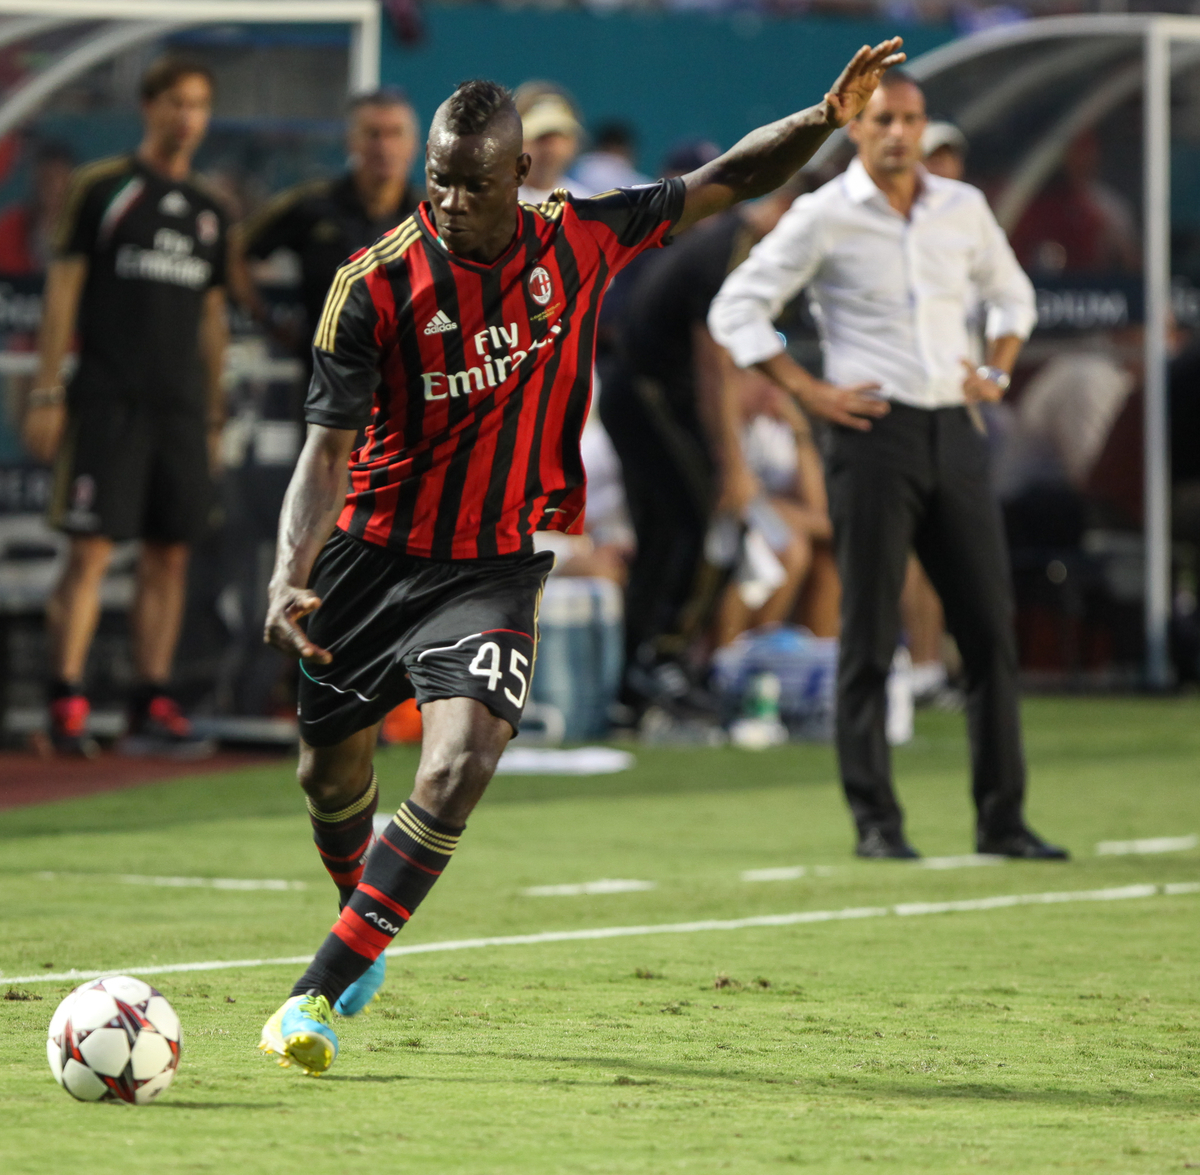 Massimiliano Allegri espera poder alinear a Mario Balotelli (Foto: Focus Images Ltd).